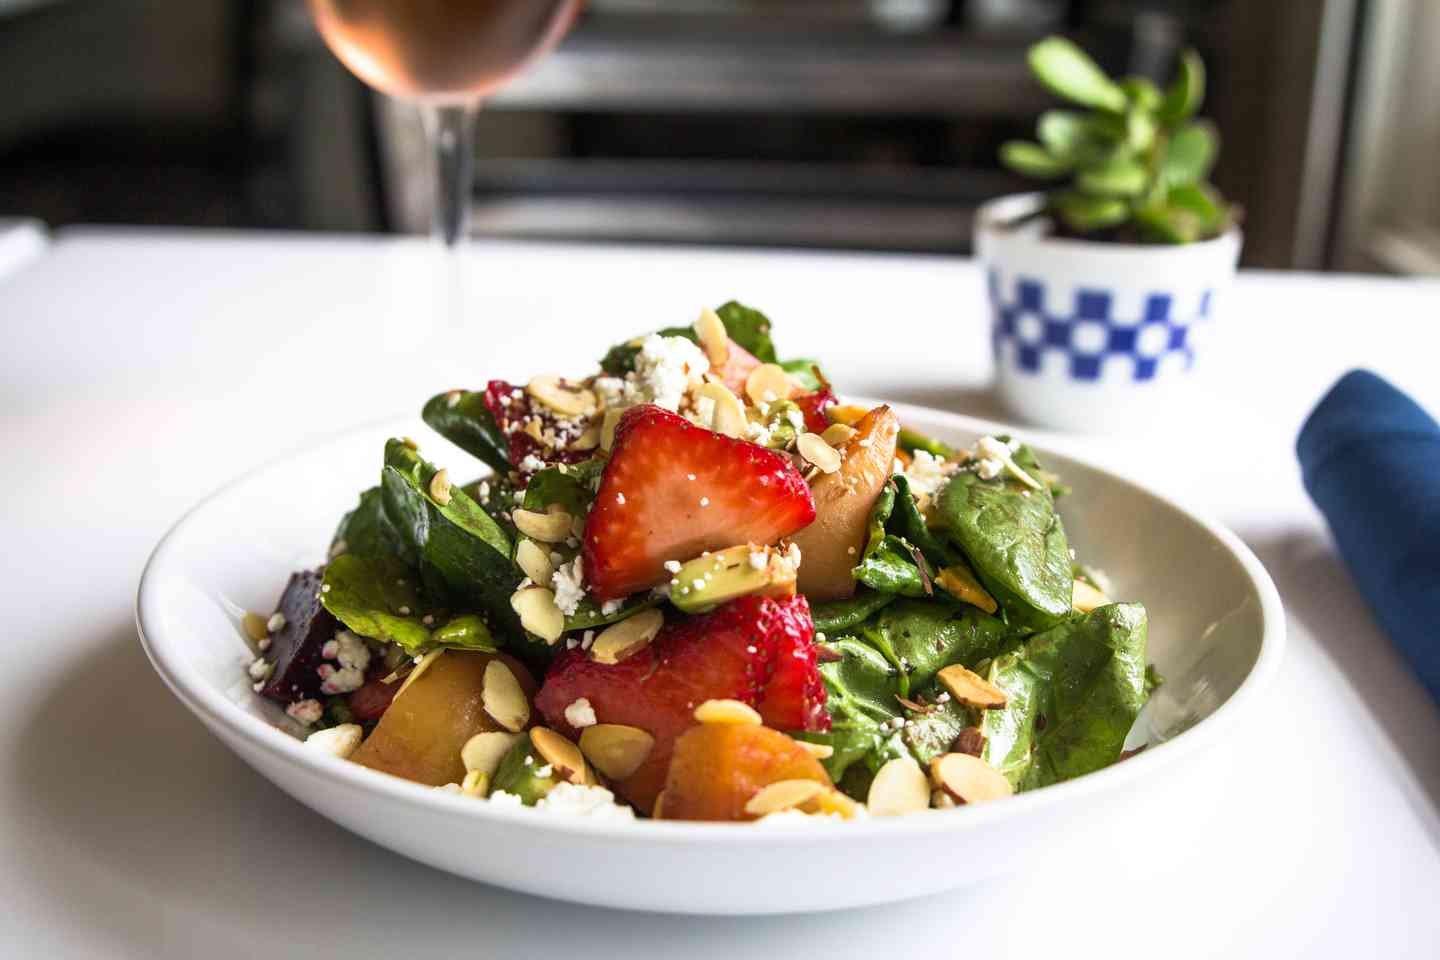 Beets & Goat Cheese Salad